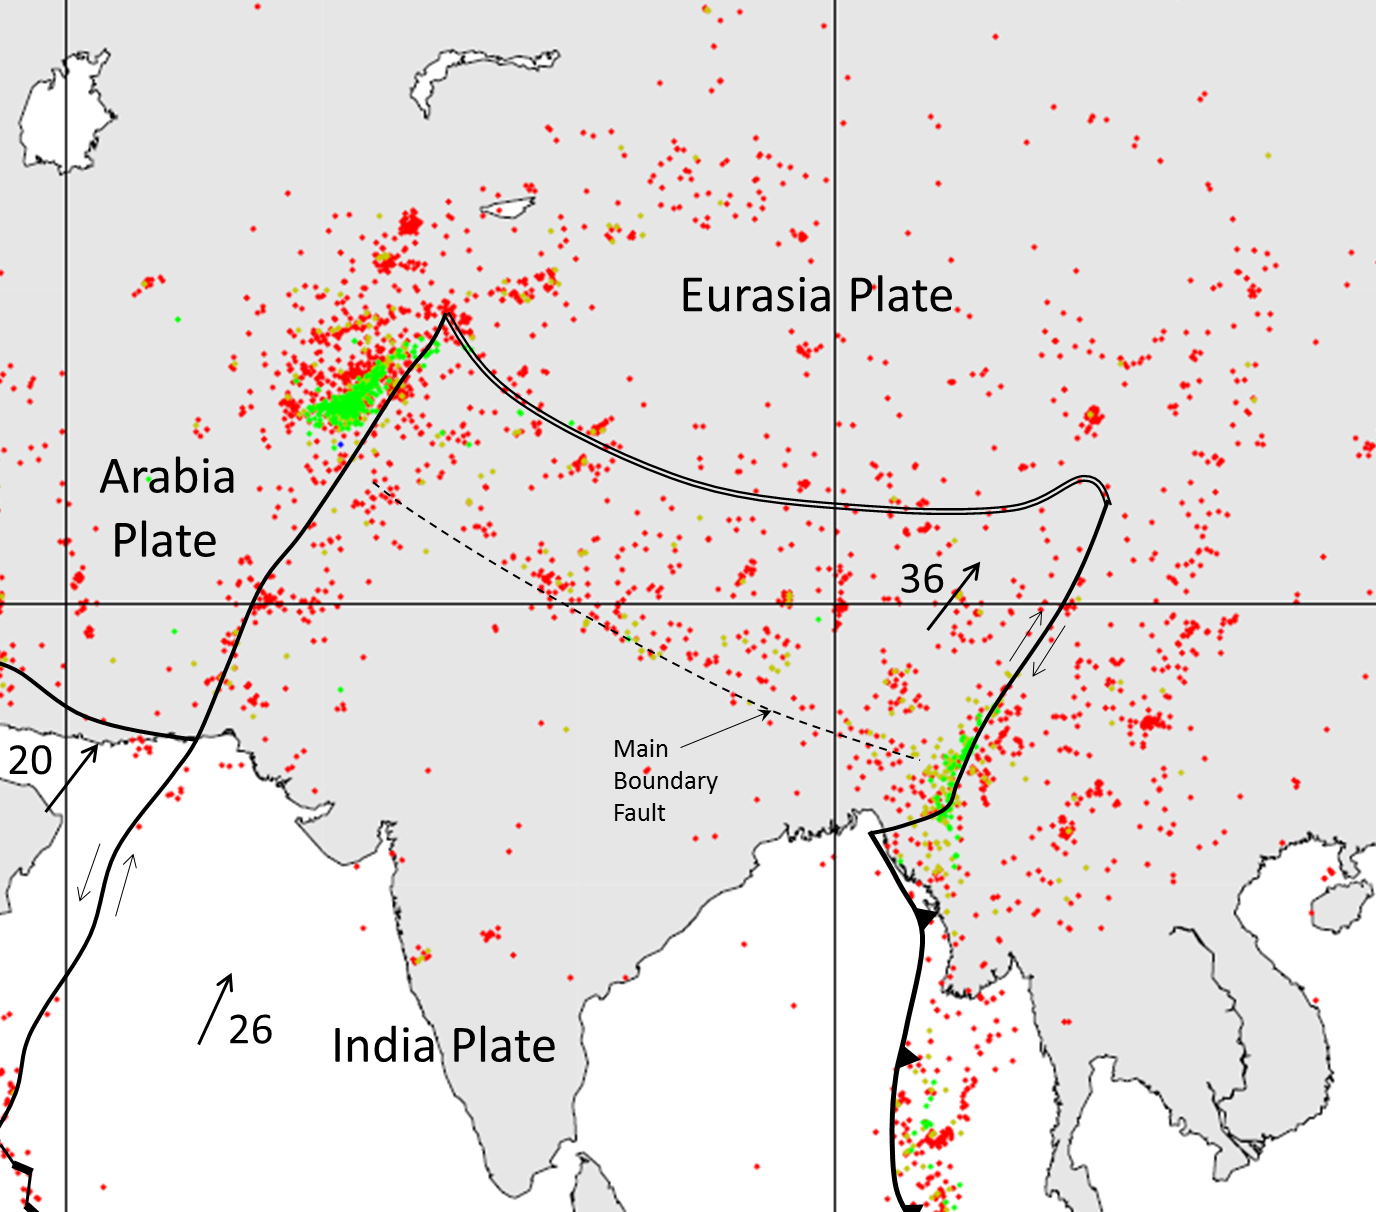 112 earthquakes and plate tectonics physical geology figure 1111 distribution of earthquakes in the area where the india plate is converging with the asia plate data from 1990 to 1996 red 0 33 km gumiabroncs Images